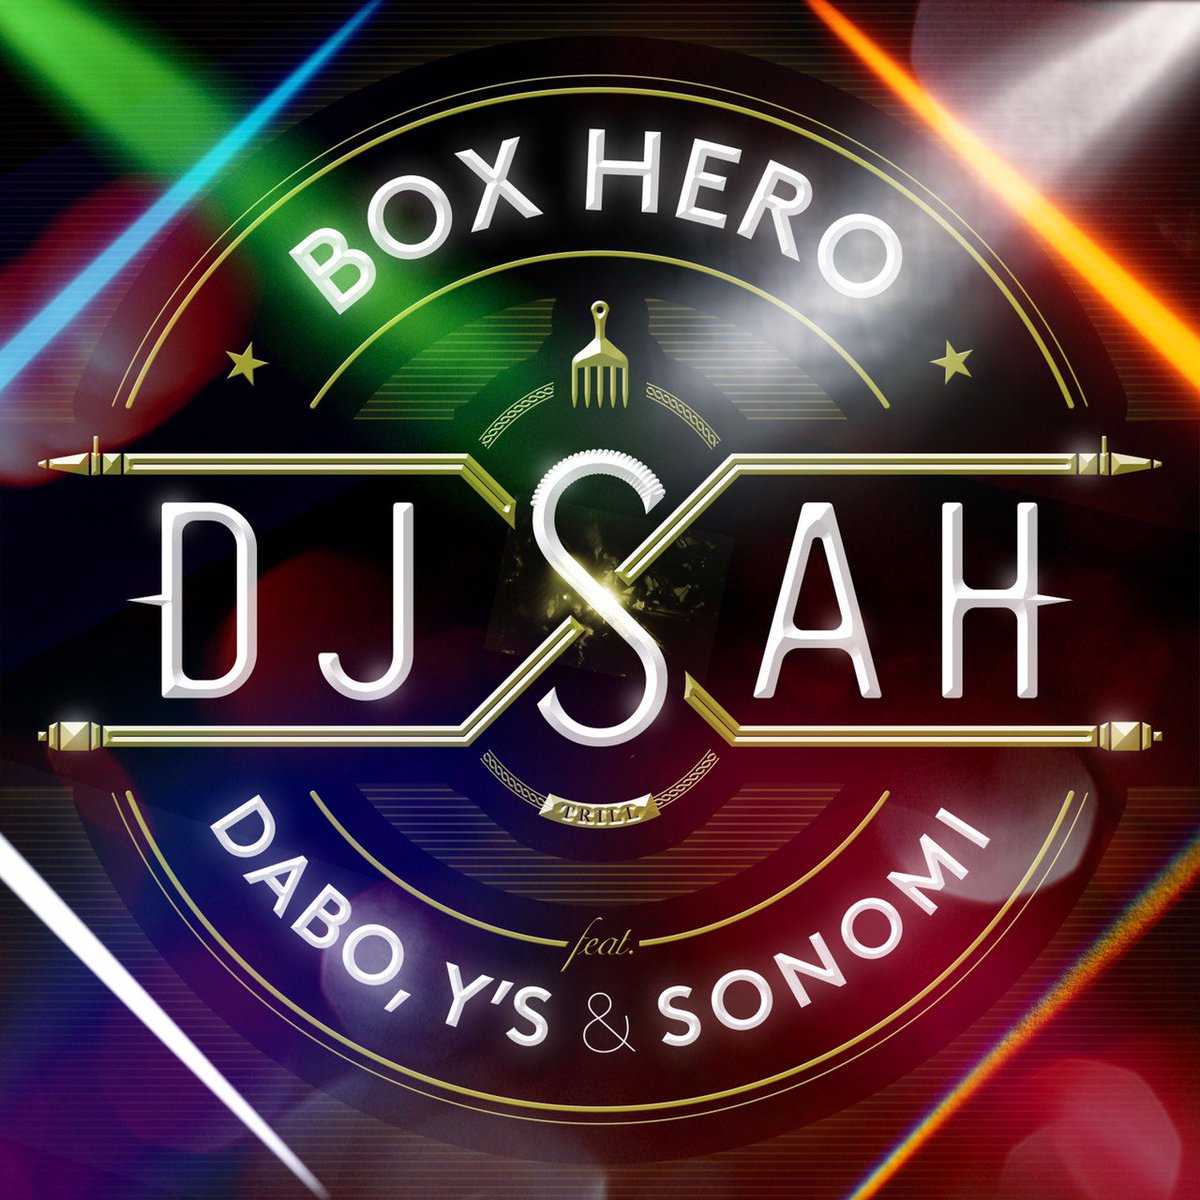 "5.20(金)にHARLEM RECORDINGSから自分名義の音源をリリースします! DJ SAH ft. DABO,Y'S & SONOMI ""BOX HERO"" Produced by DJ WATARAI #BOXHERO https://t.co/4pu3Lhj7HK"